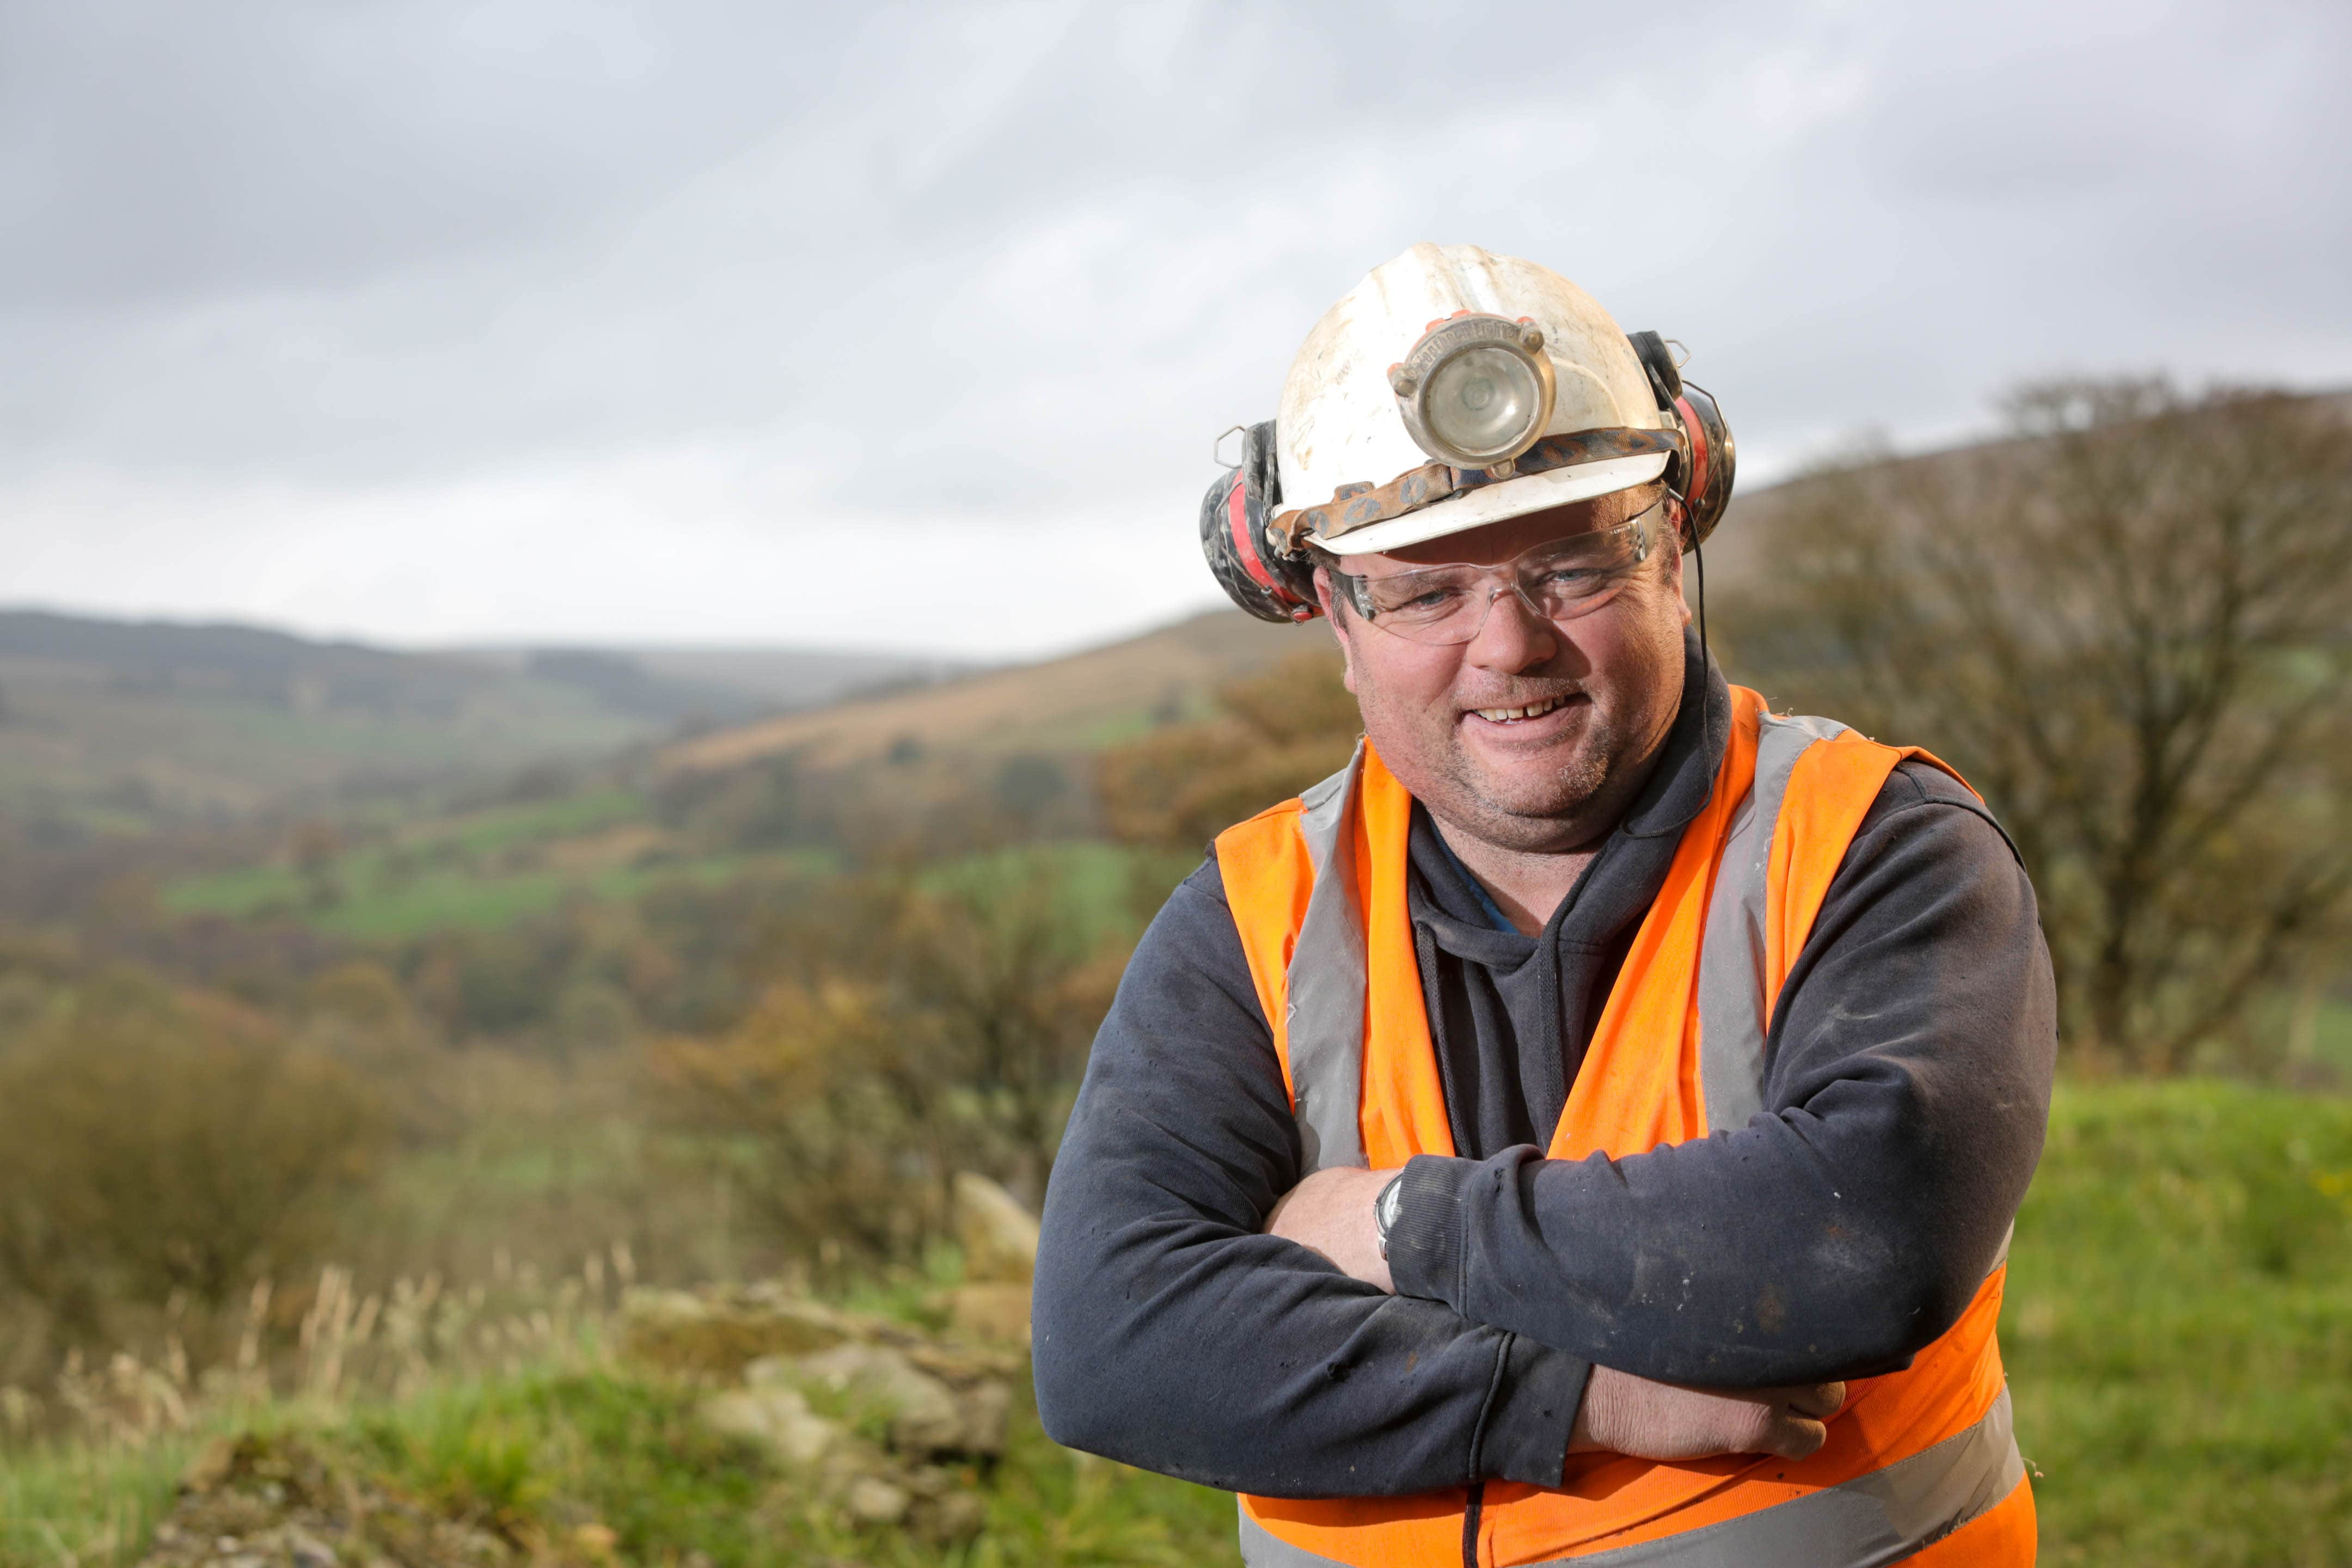 Mining career change brings new opportunities